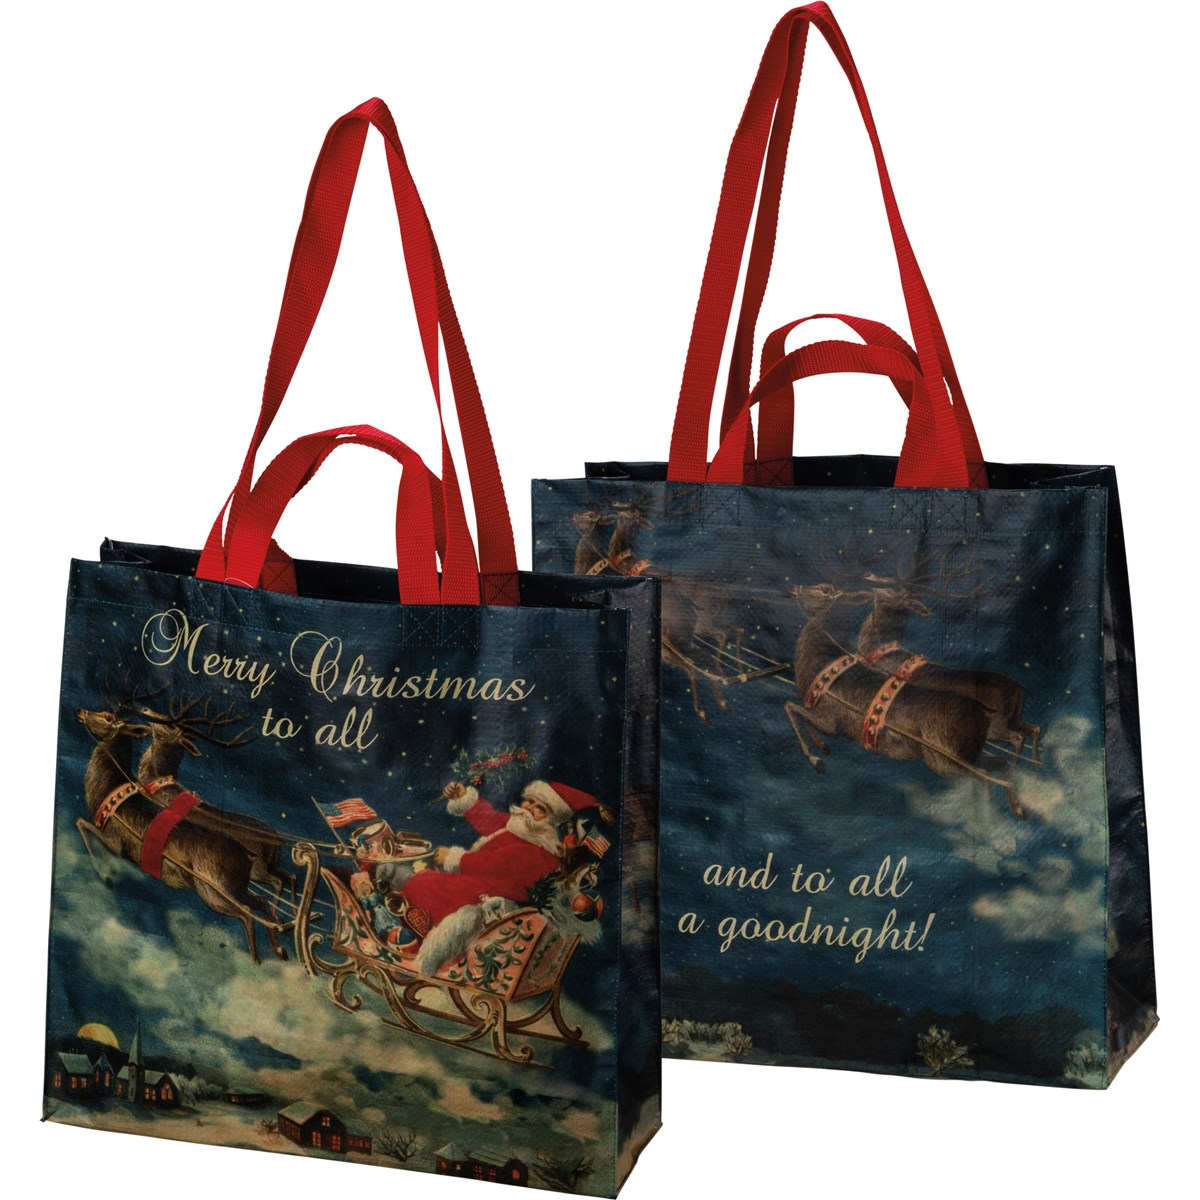 "Market Tote - Merry Christmas To All - 15.50"" x 15.25"" x 6"" - Post-Consumer Material, Nylon"